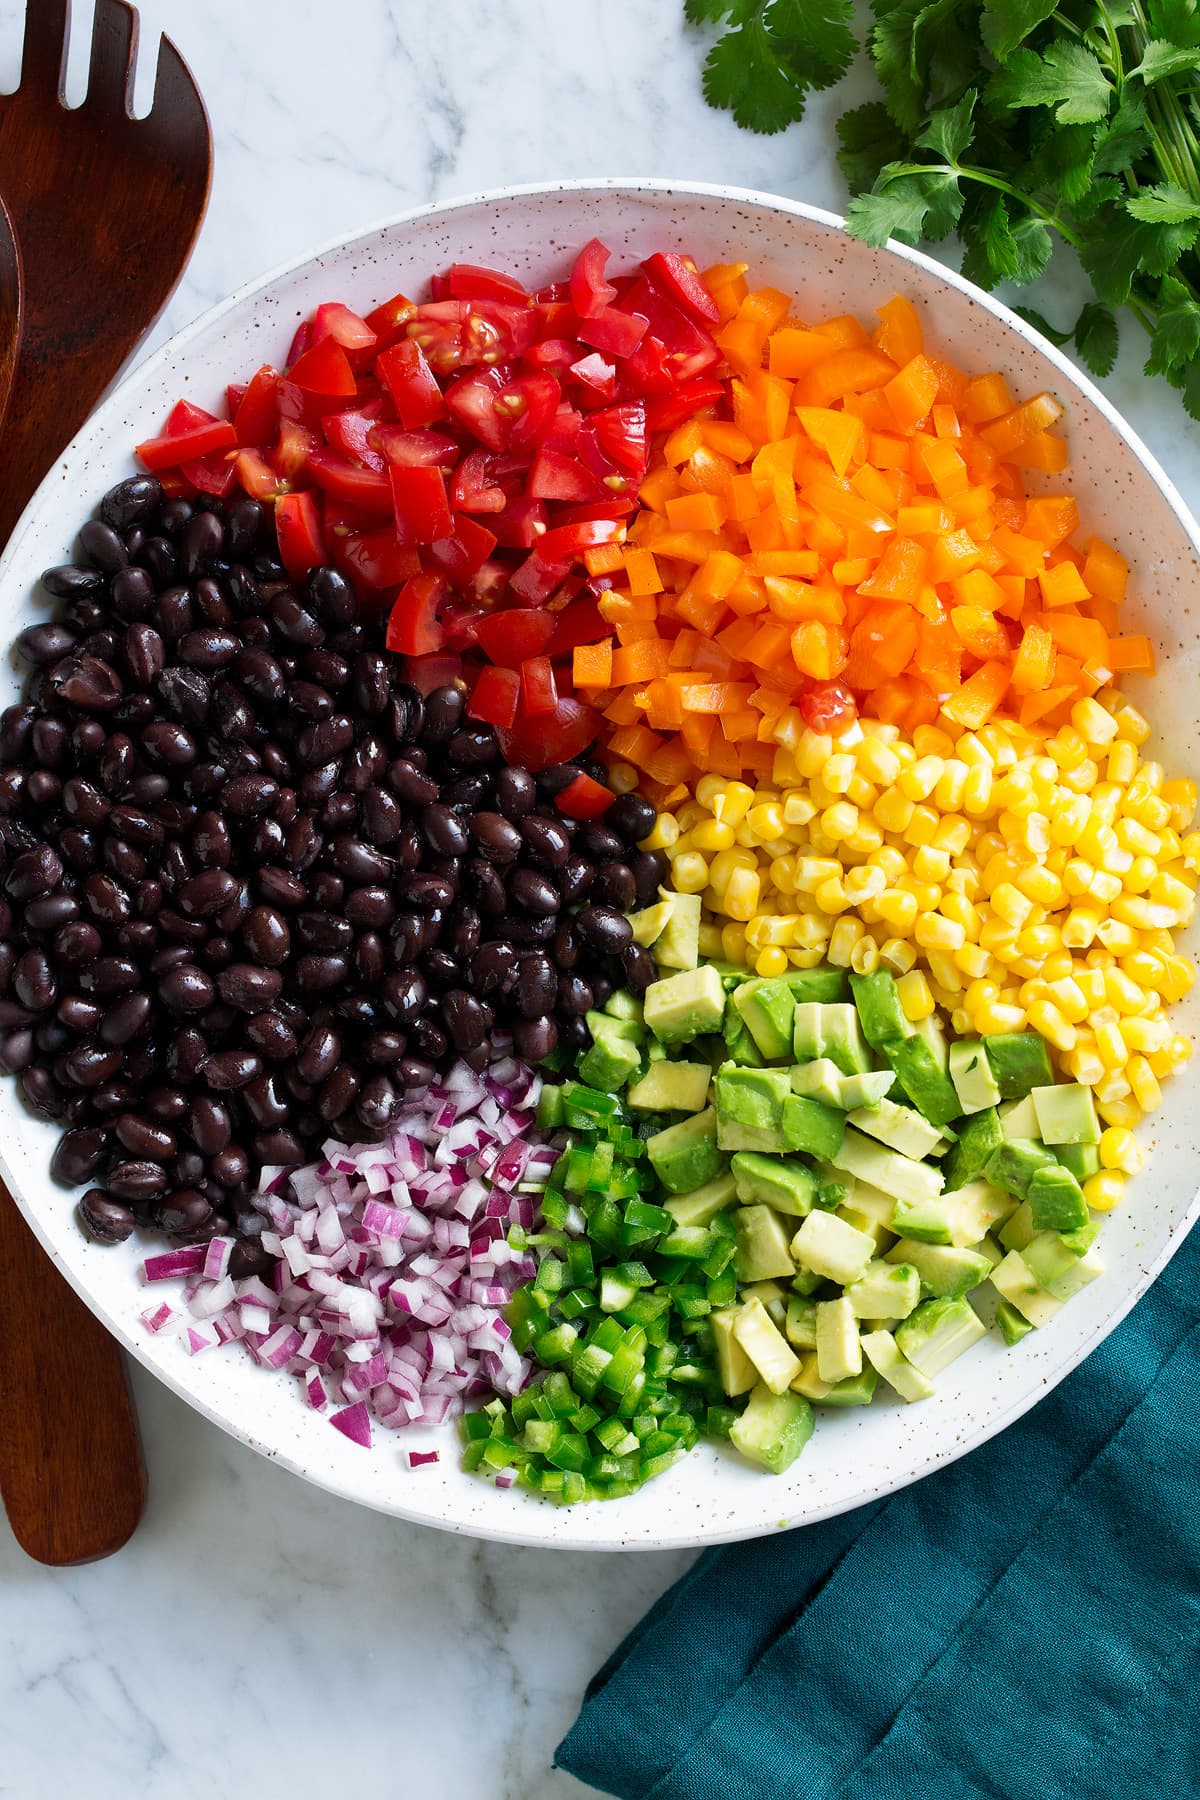 Black bean and corn salad ingredients in a mixing bowl before tossing together.